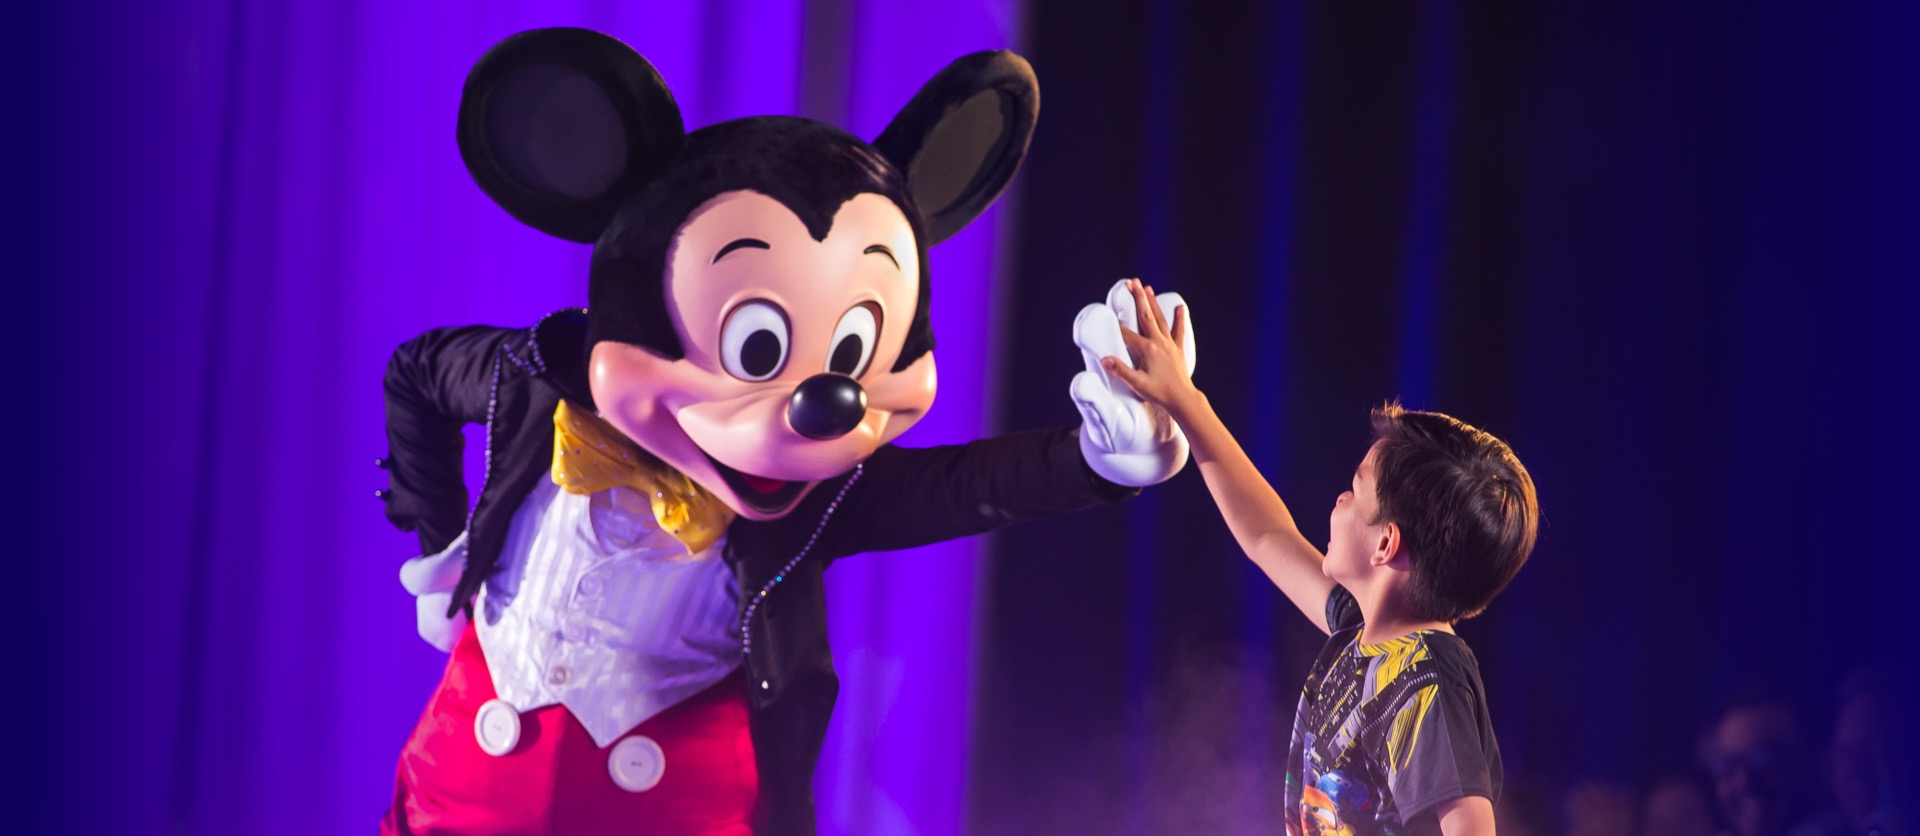 Mickey Mouse high fives young boy during live show